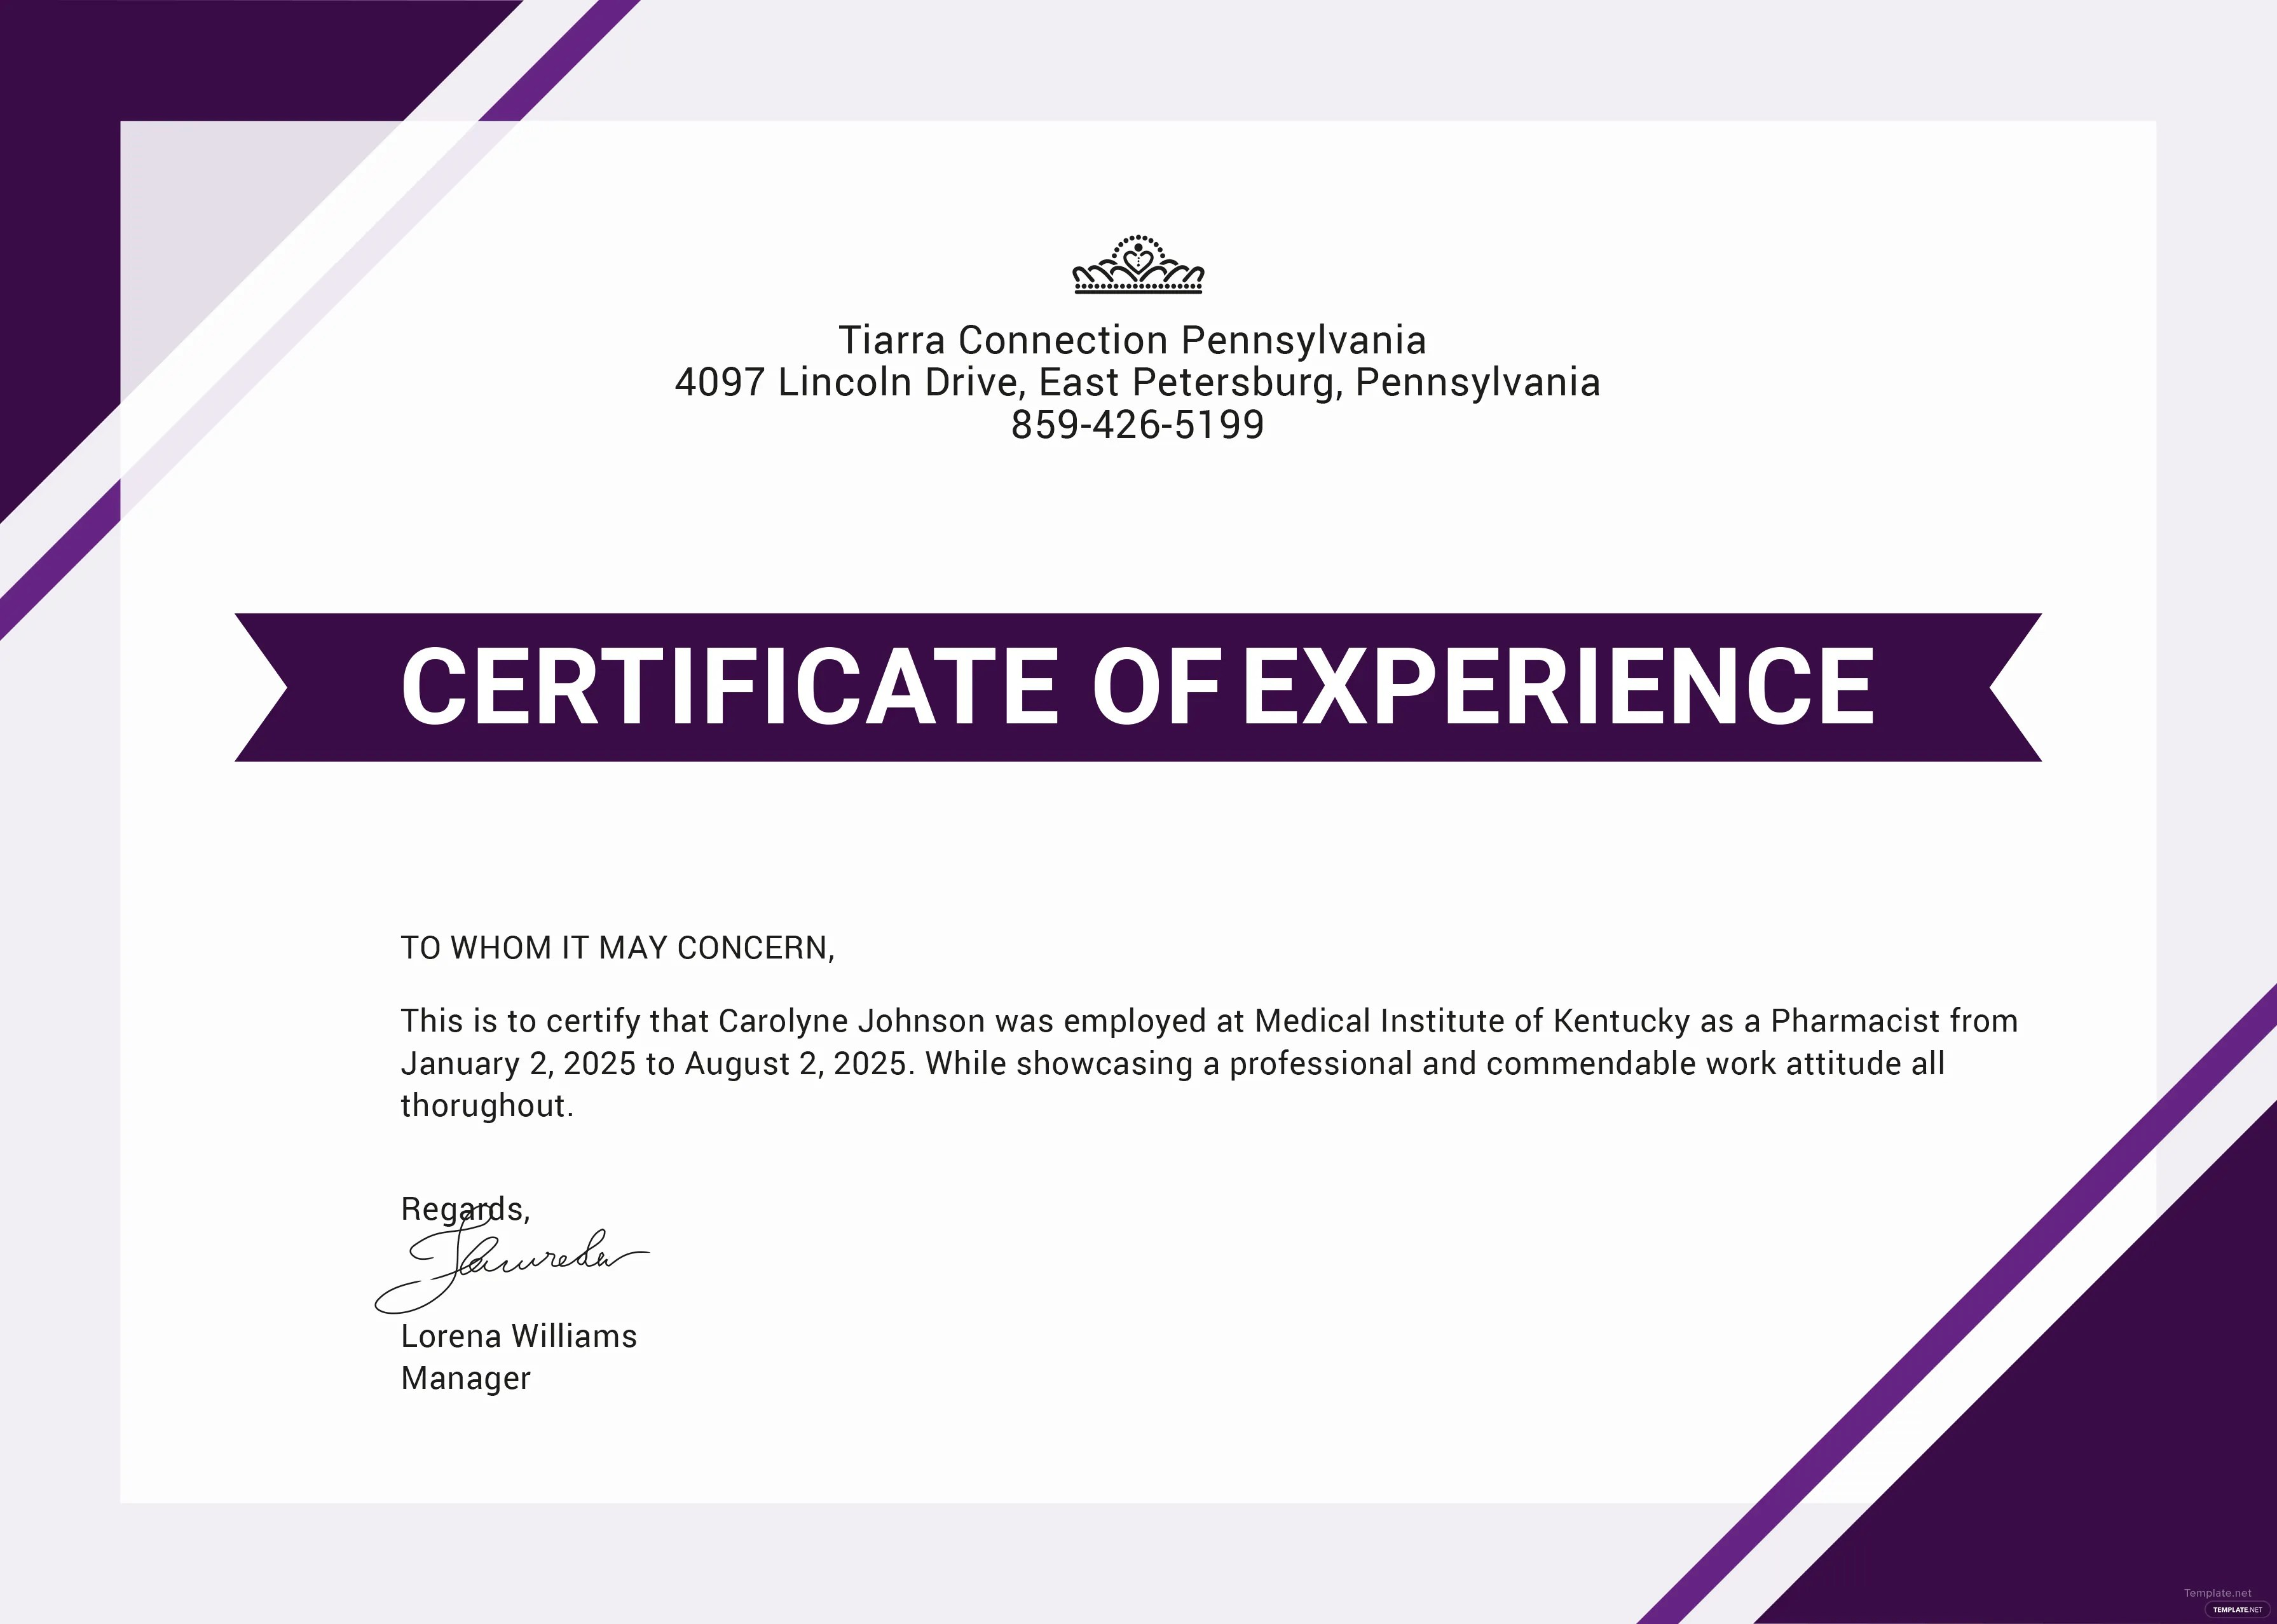 Free Certificate Of Job Experience Template In Adobe Photoshop Microsoft Word Microsoft